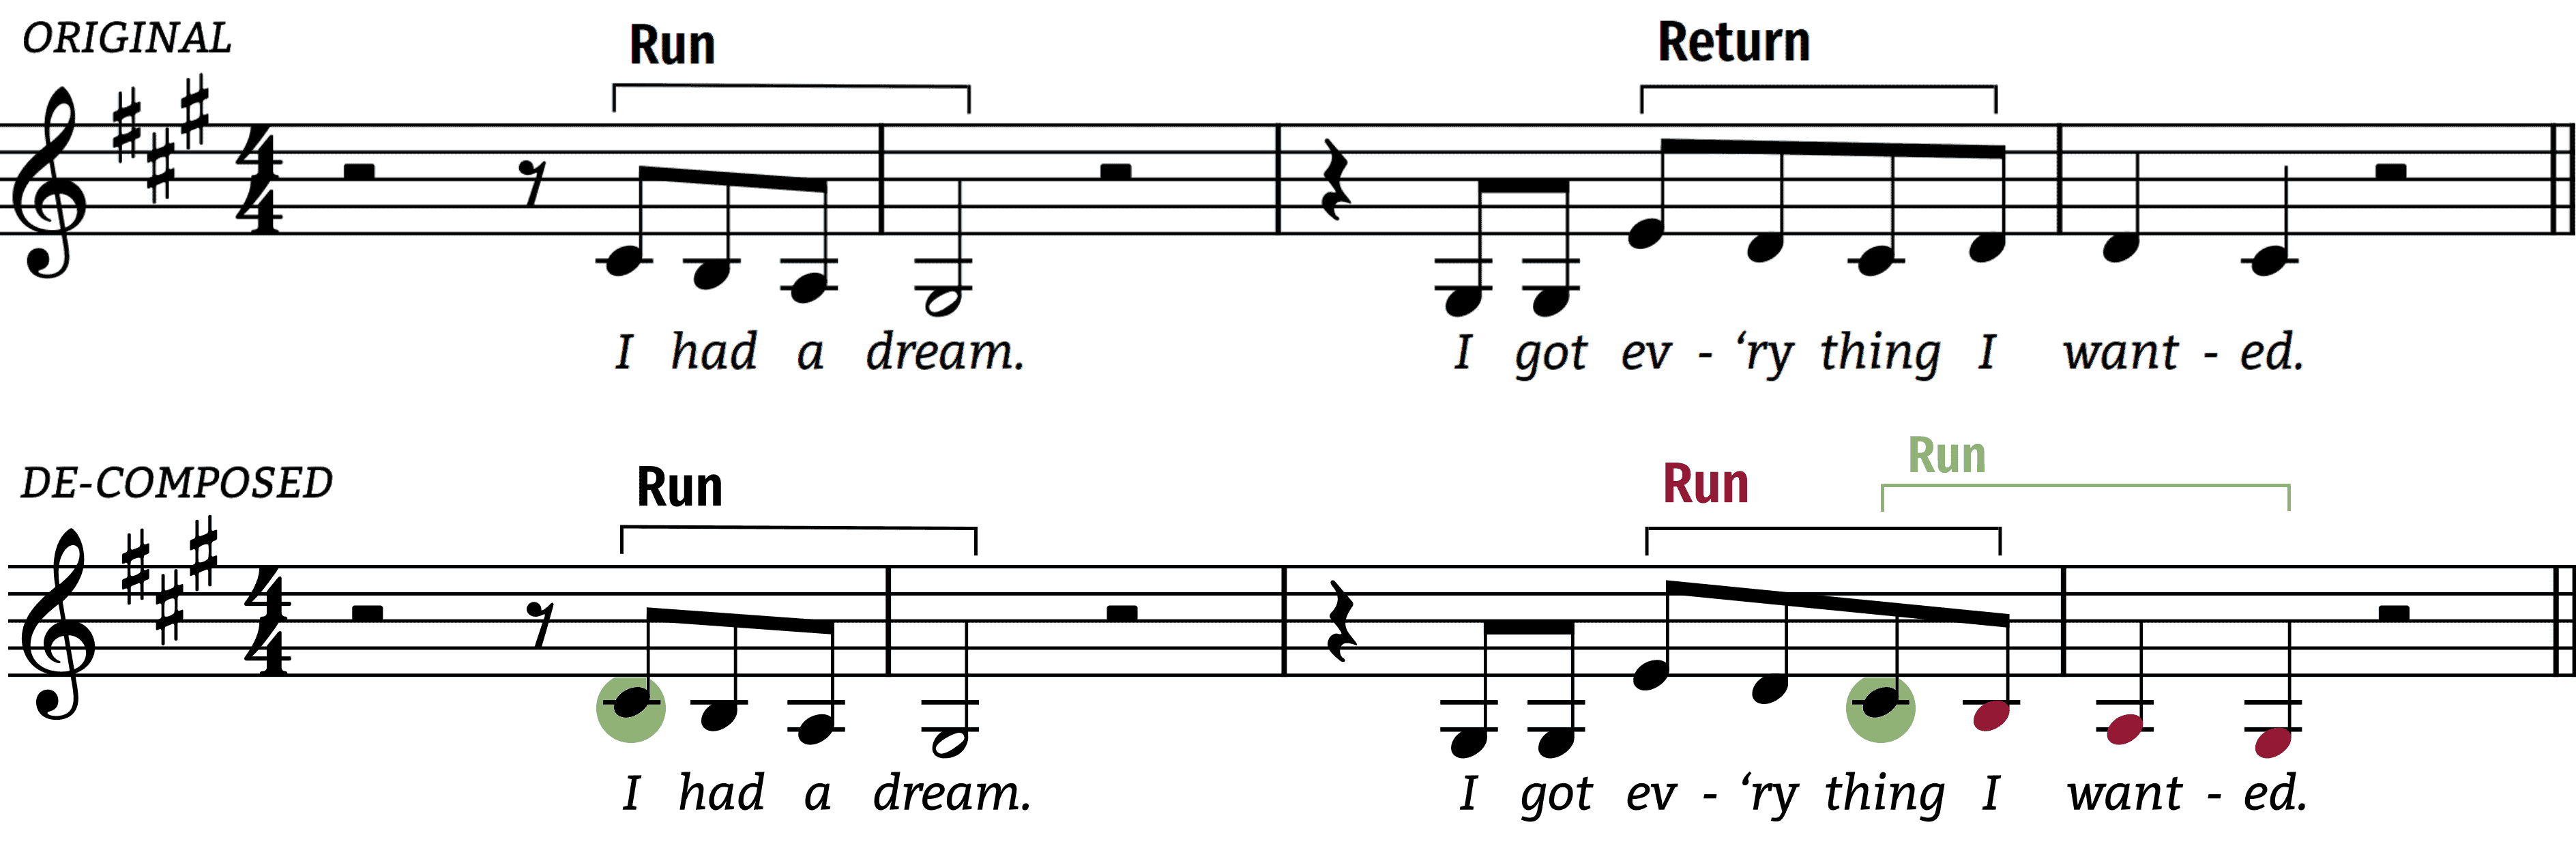 Everything I wanted de-composing the end of the first phrase